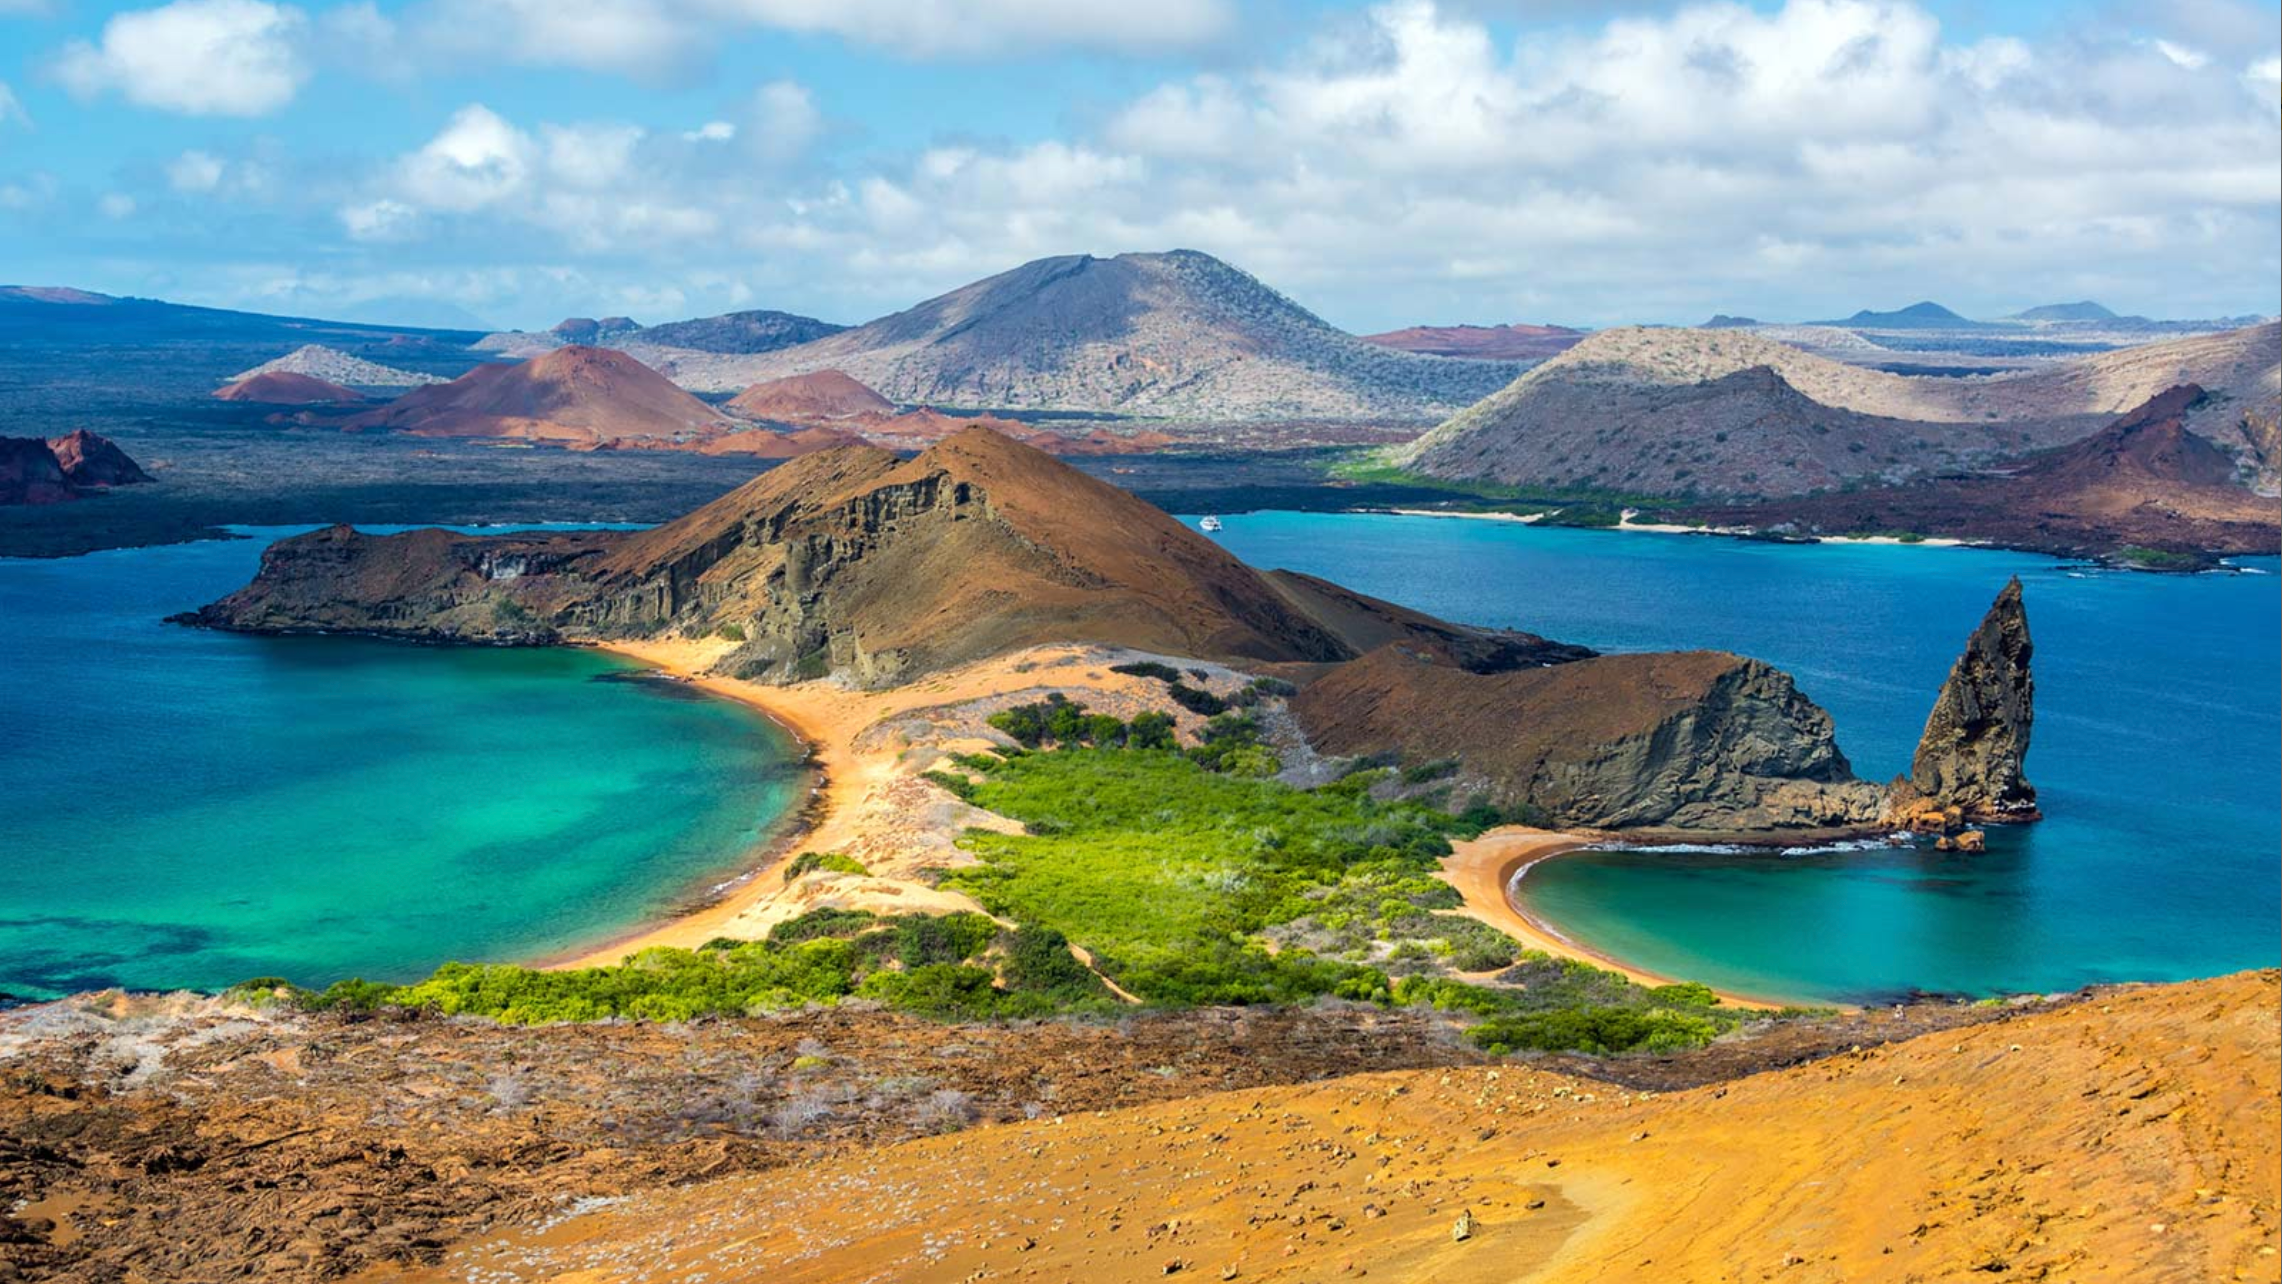 a view of the galapagos islands